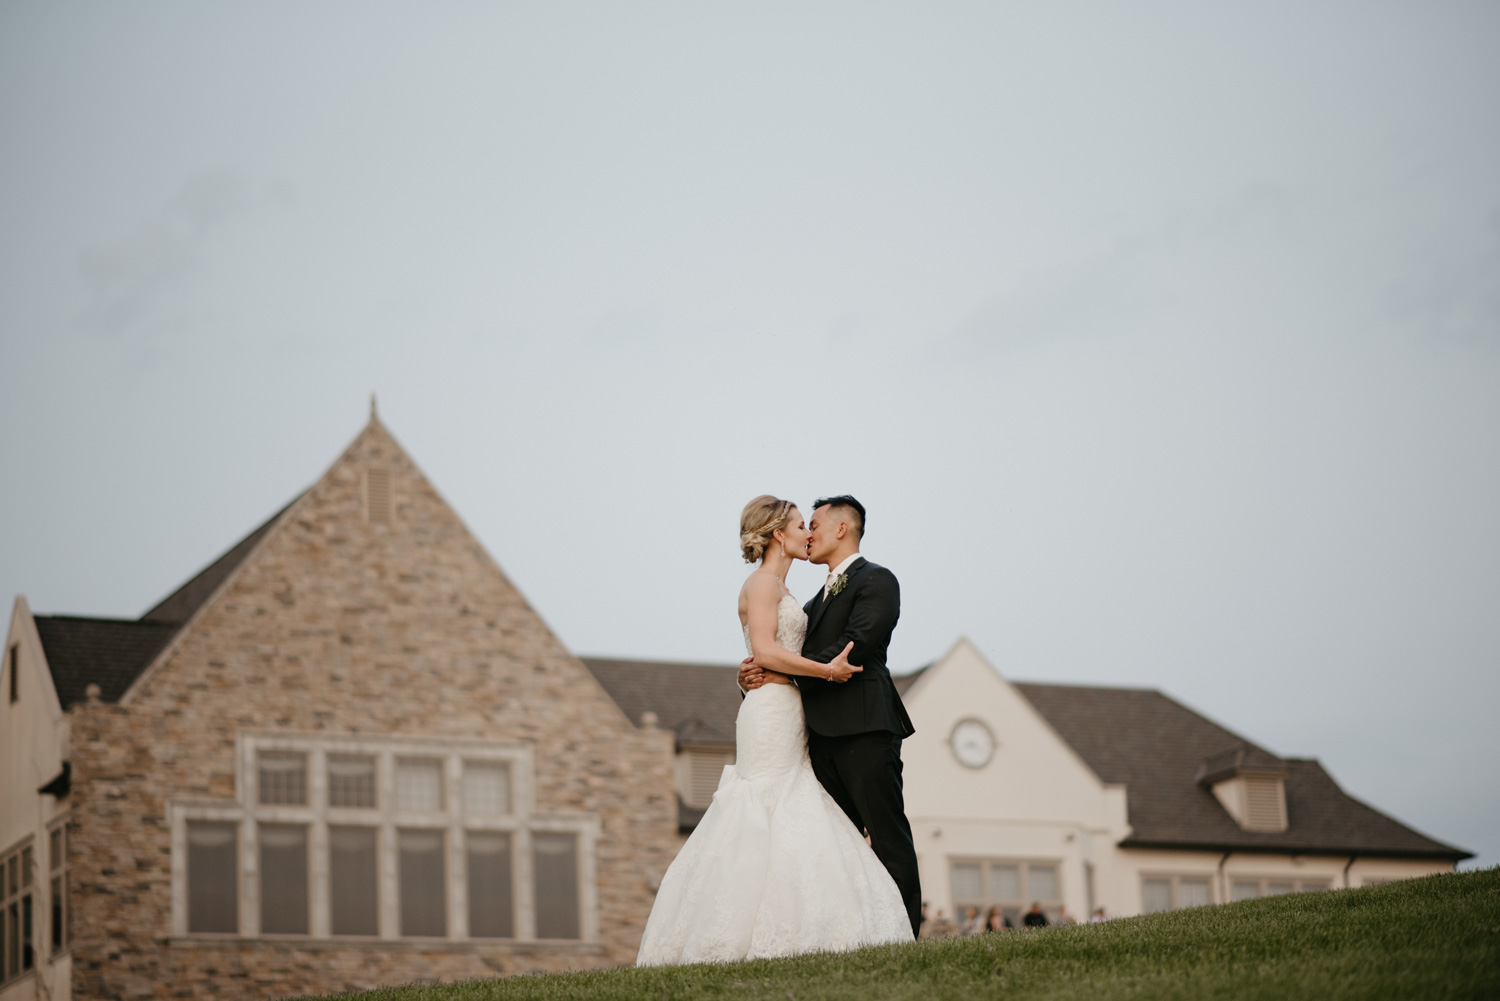 Sunset photos on golf course bride and groom